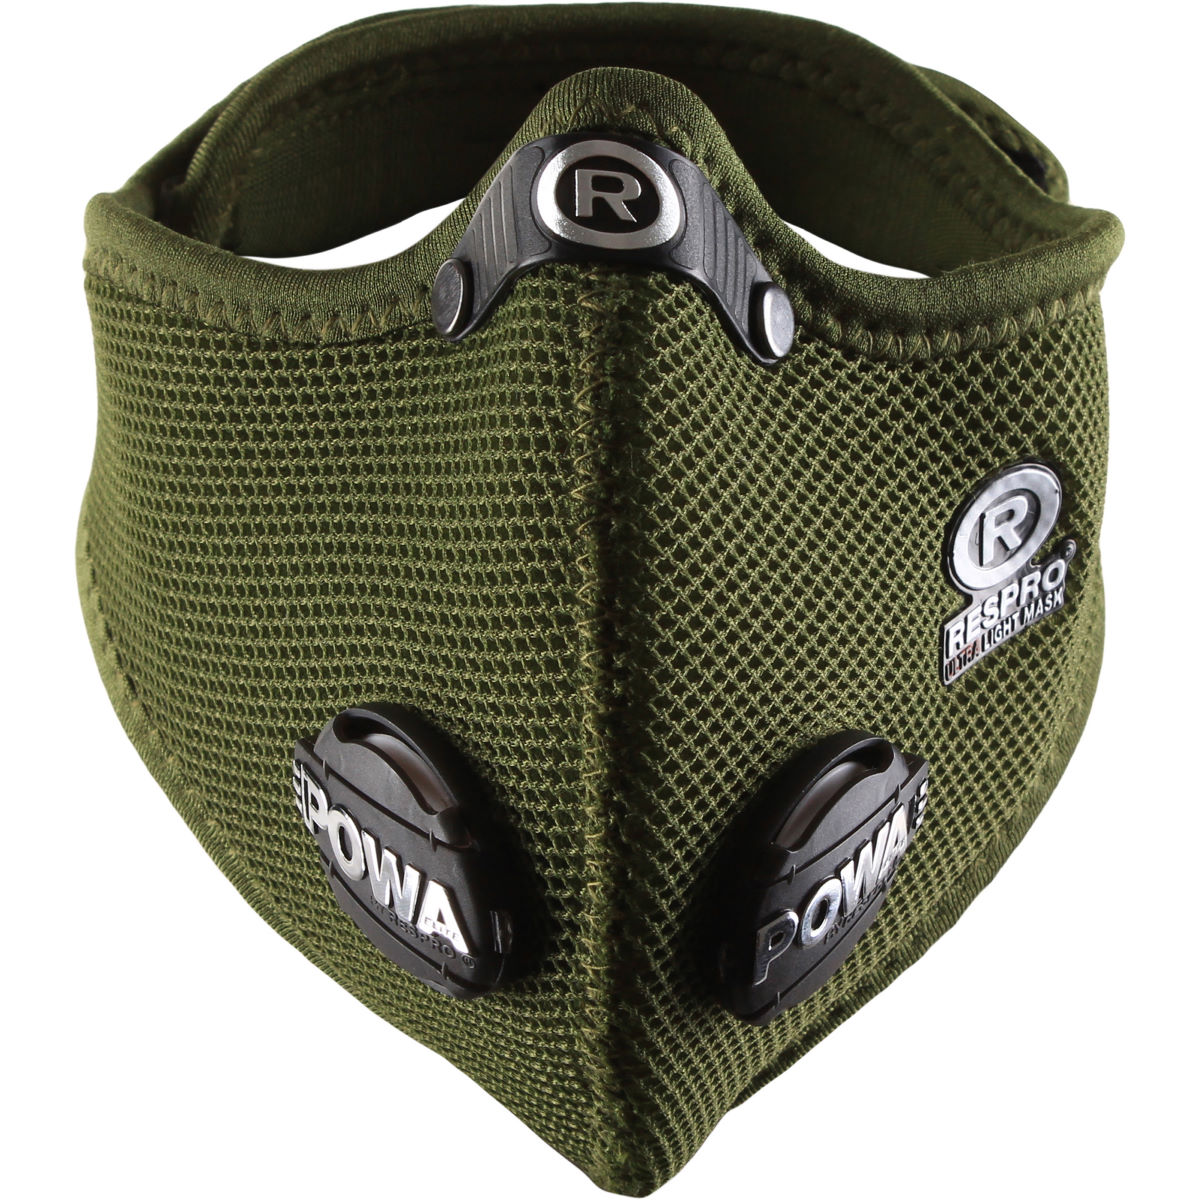 Máscara antipolución Respro Ultralight - Máscaras anticontaminación